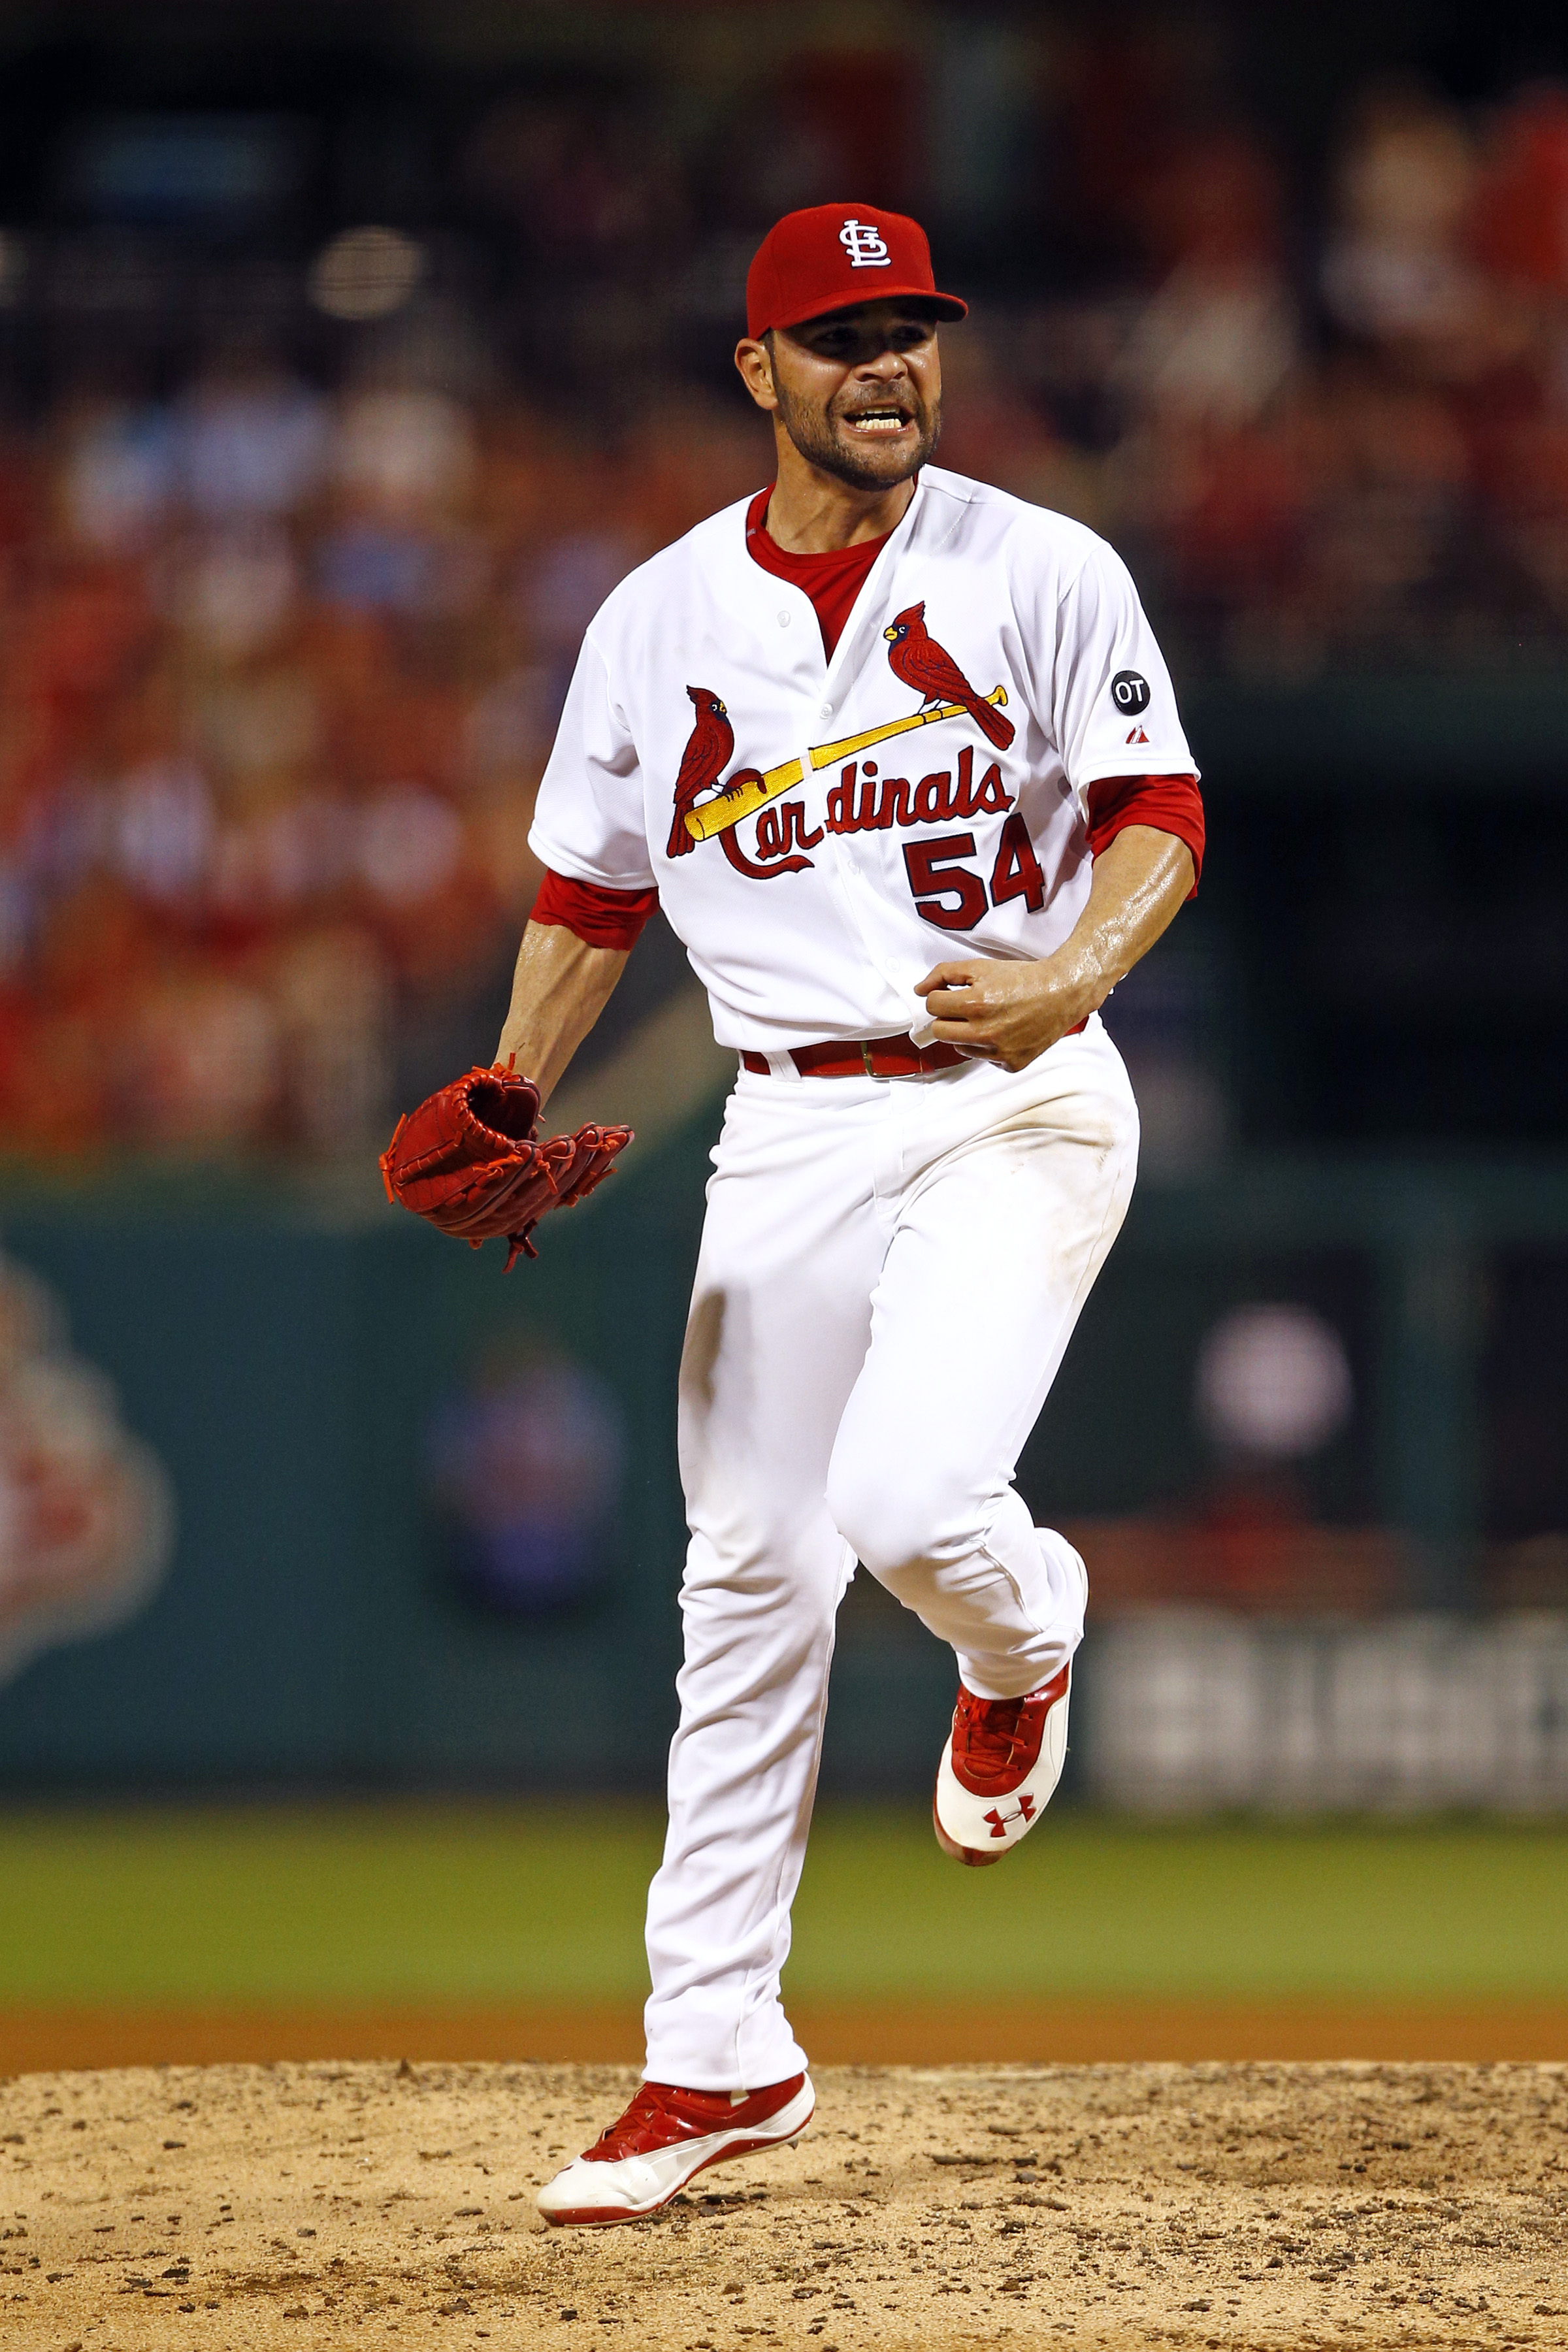 St. Louis Cardinals starting pitcher Jaime Garcia reacts after striking out Kansas City Royals' Eric Hosmer during the sixth inning of a baseball game Friday, June 12, 2015, in St. Louis. (AP Photo/Billy Hurst)